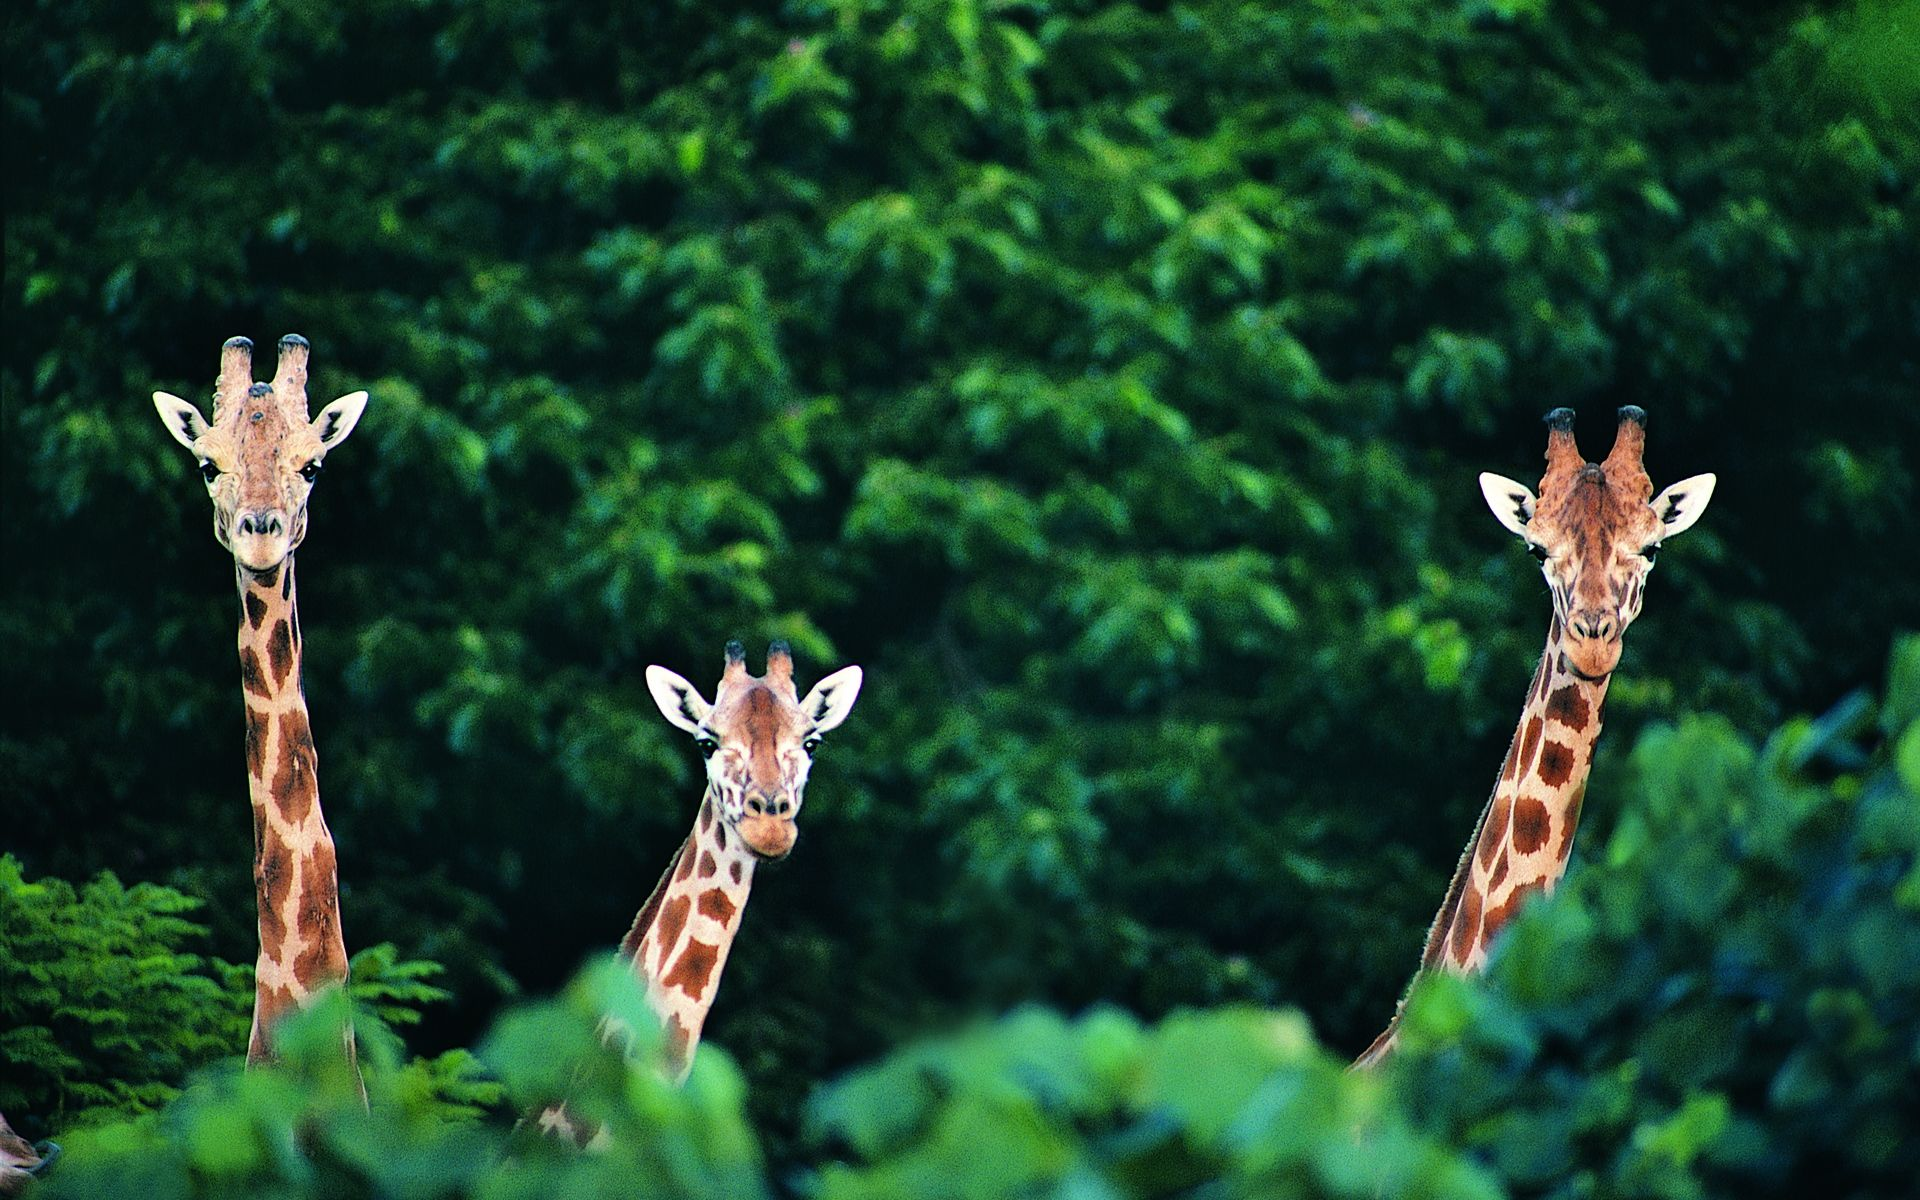 Cute Giraffe Wallpaper High Definition 2b2 1920x1200 Px 136 MB